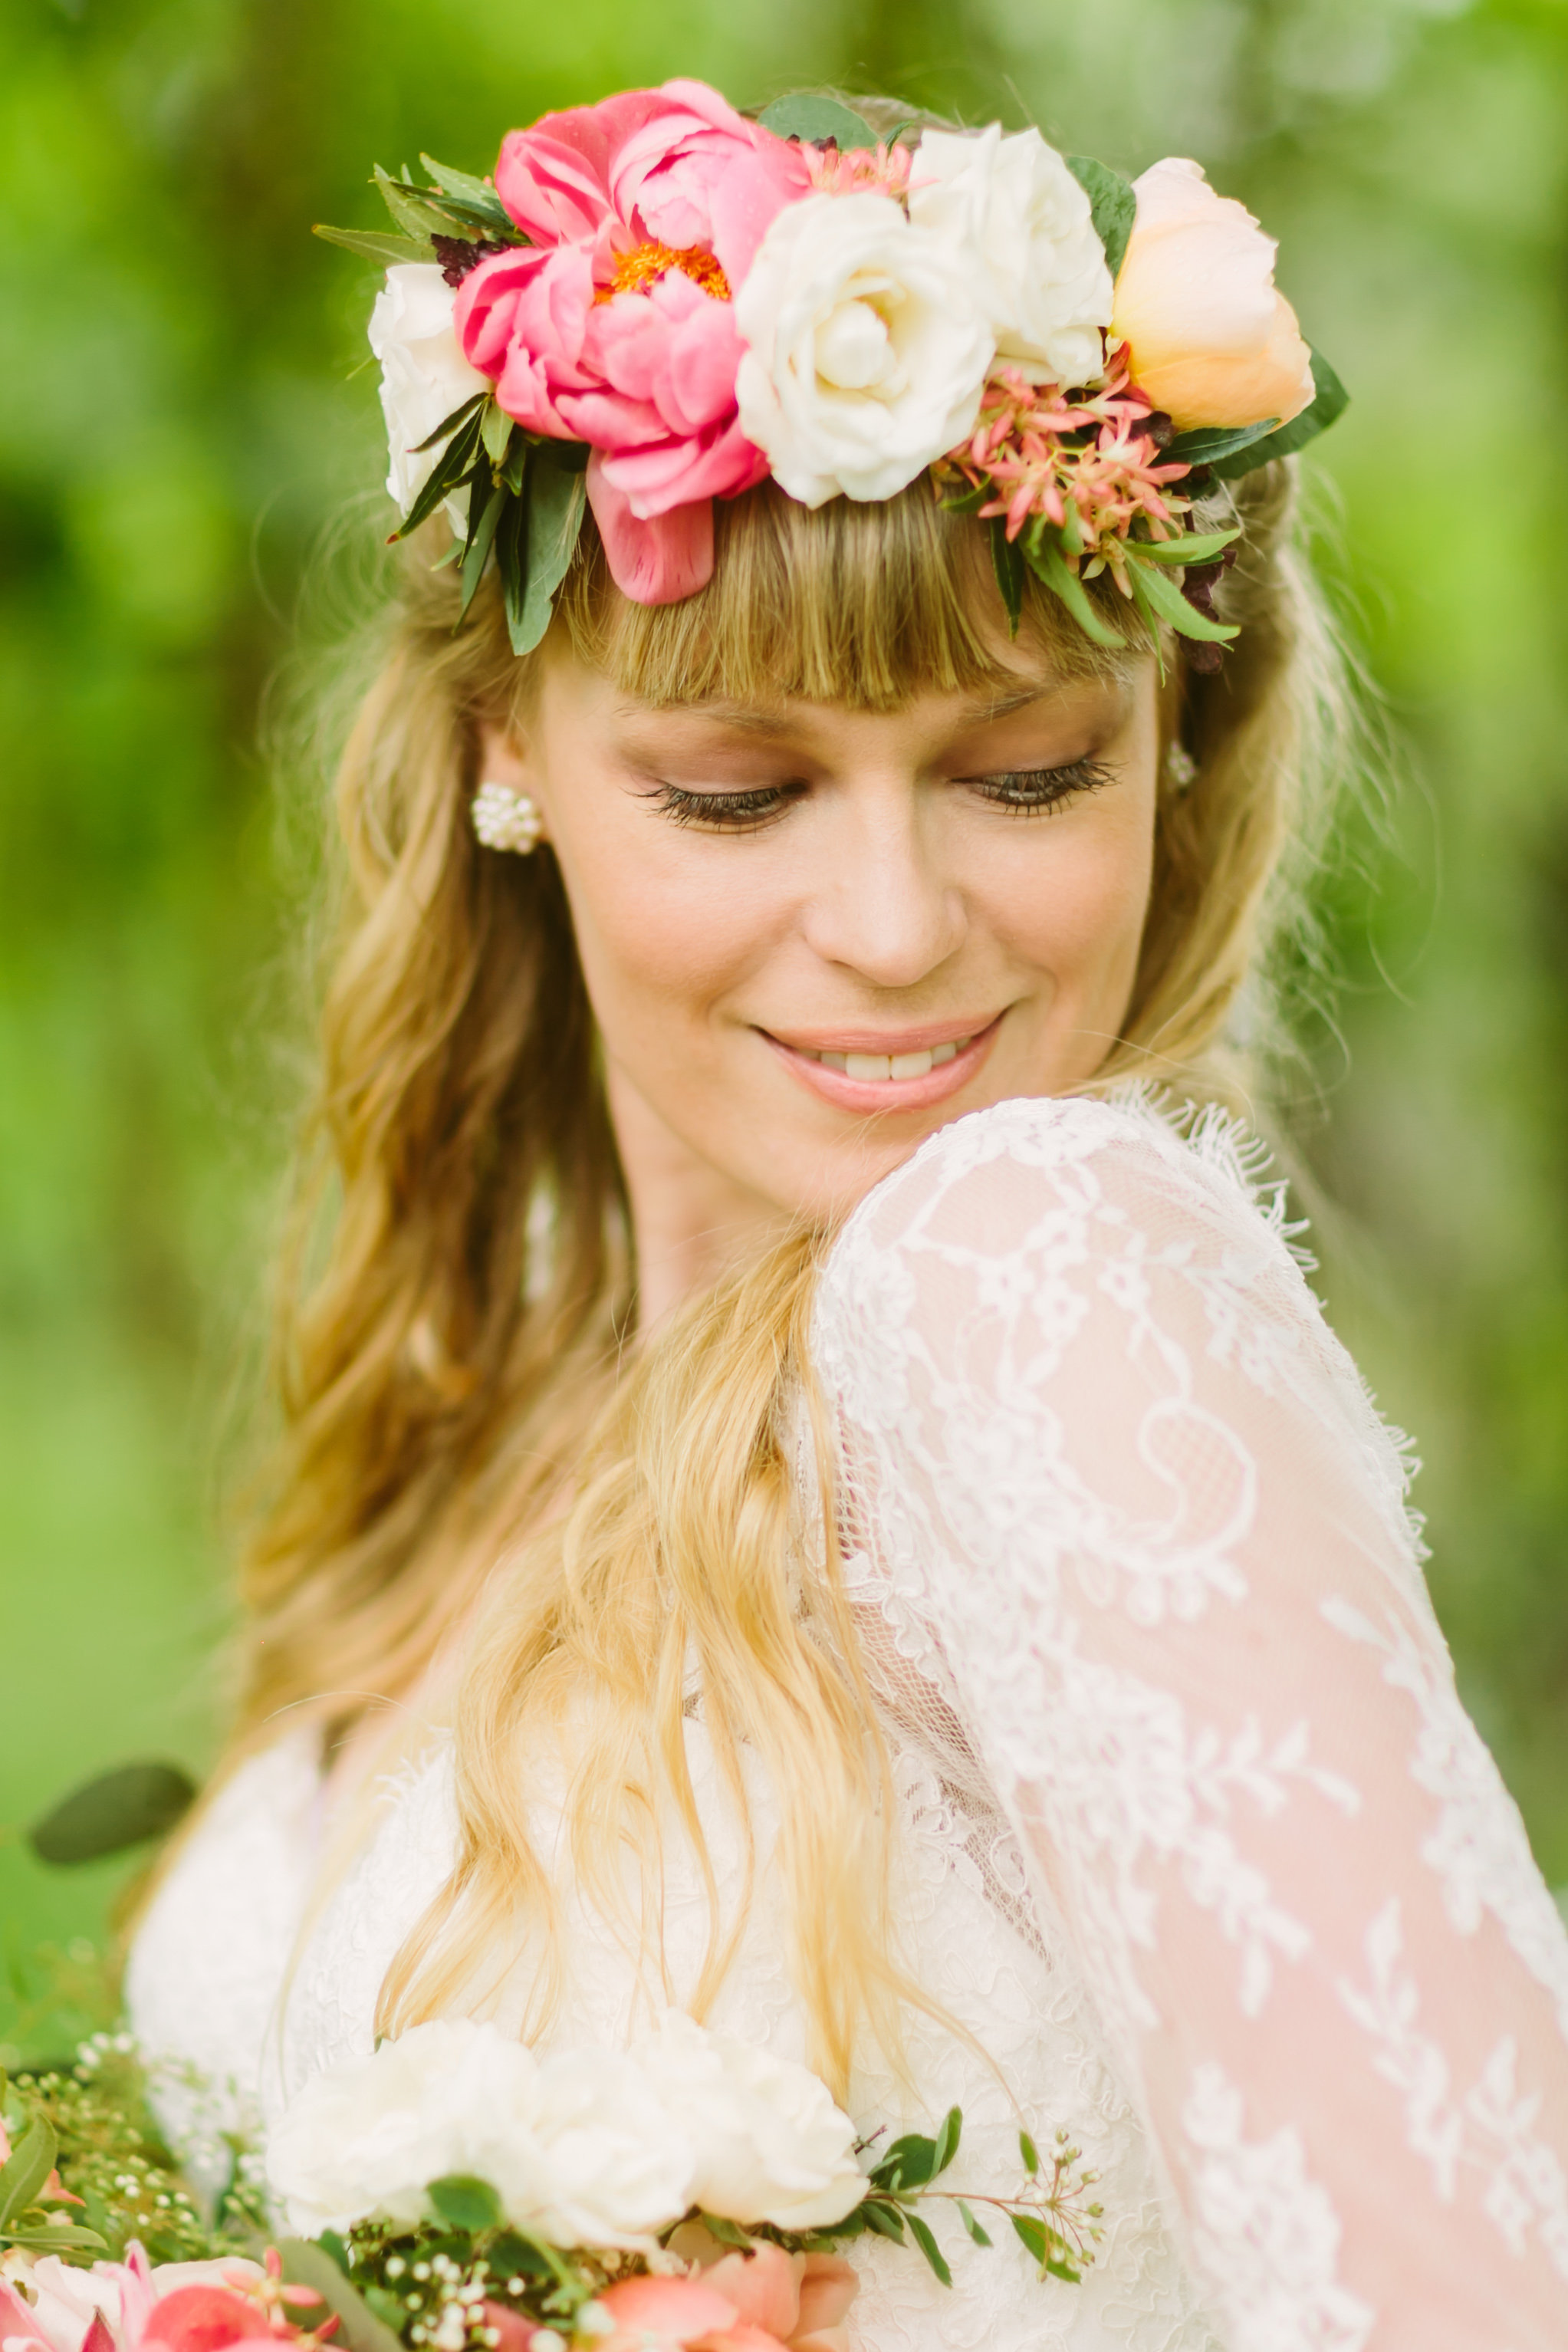 Galleries _ Boho Bridal Session5.jpg